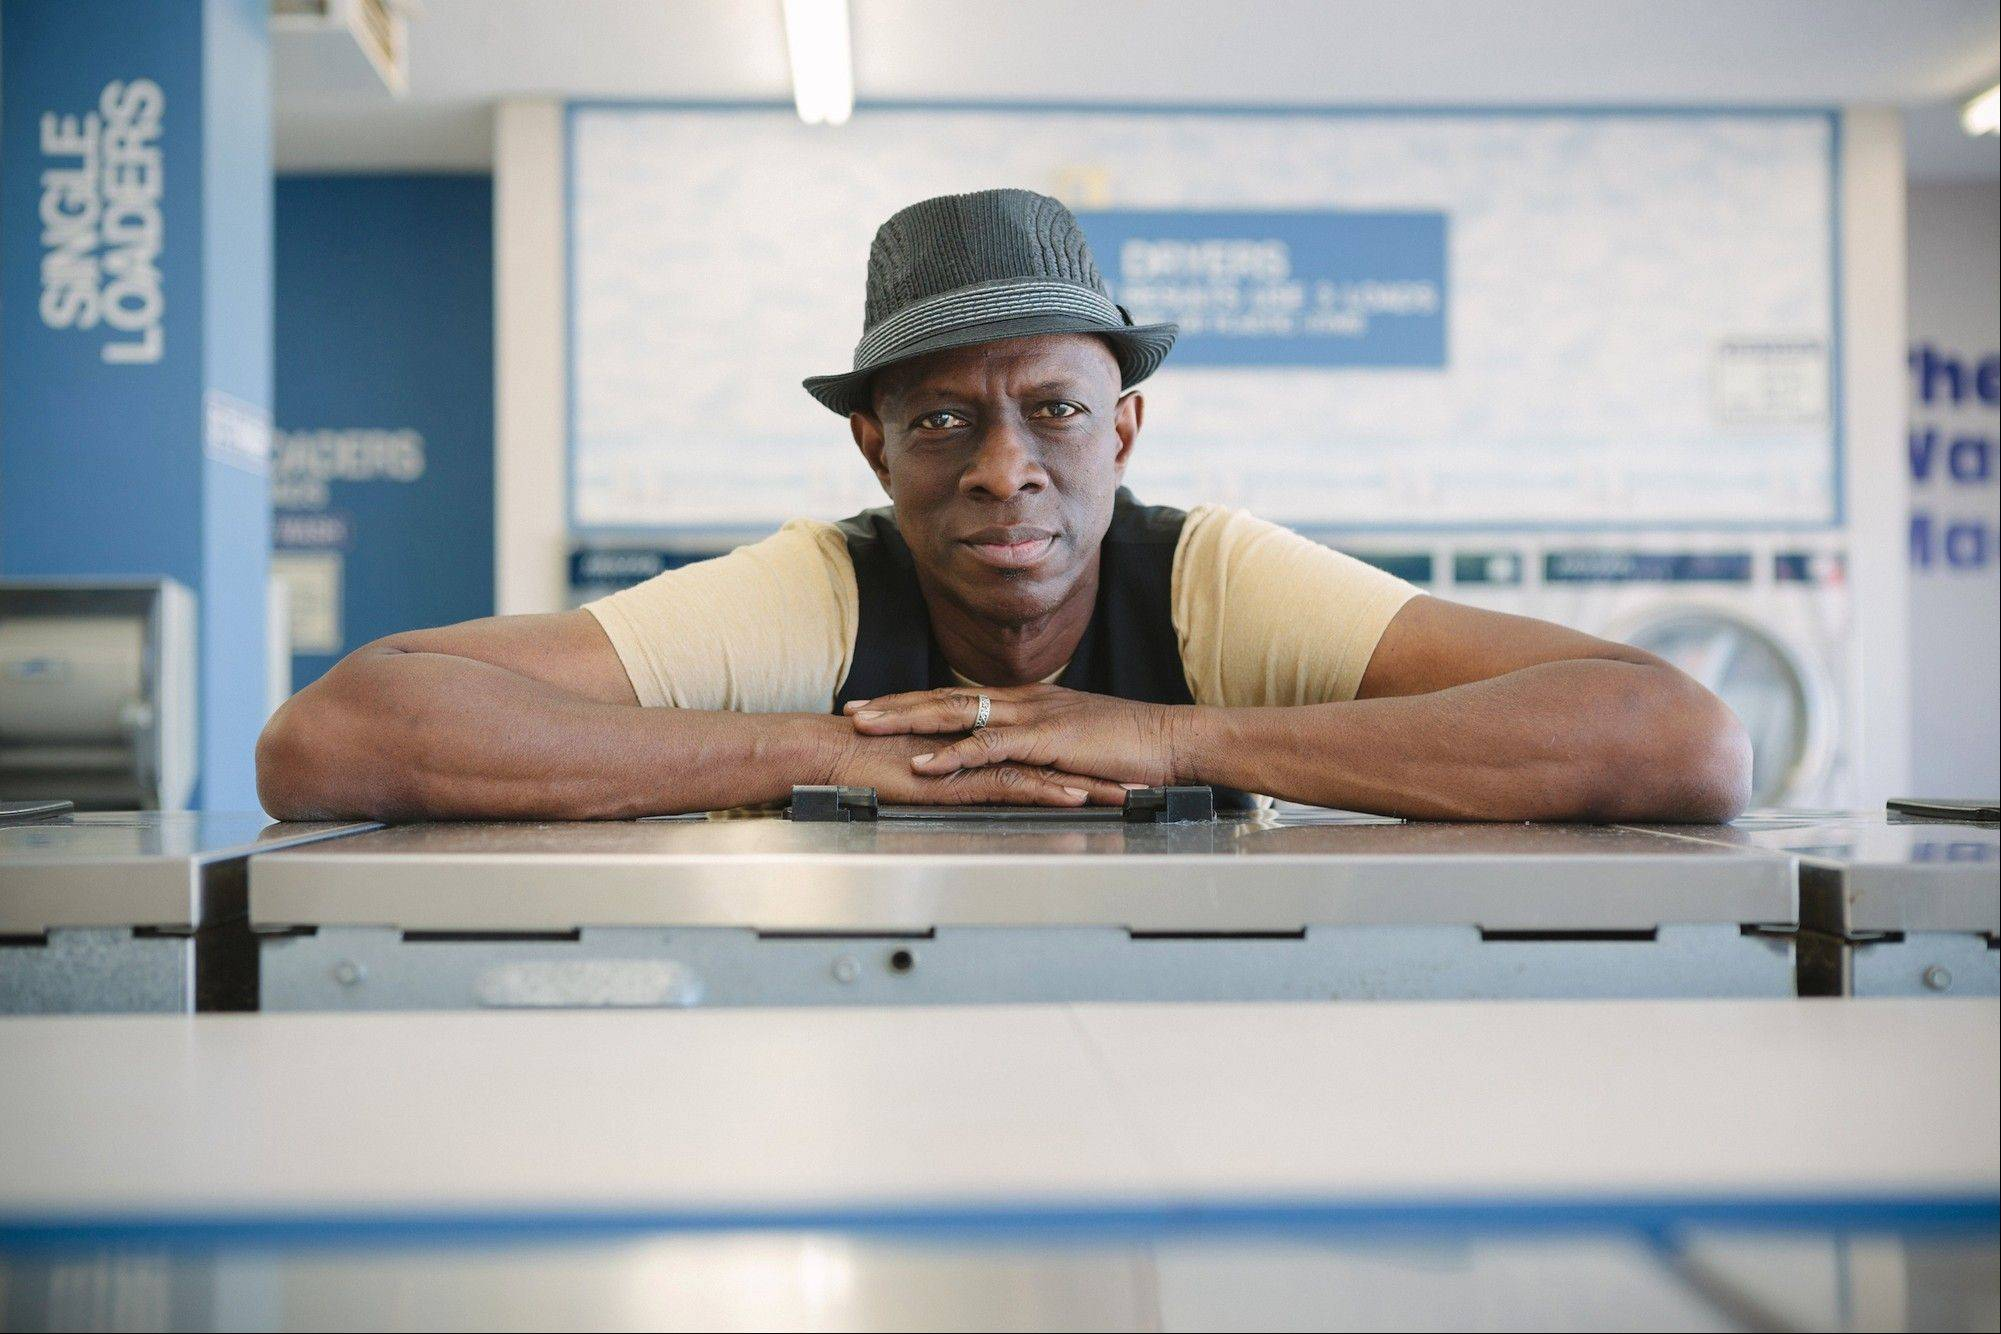 This year marks the 20th anniversary of Keb' Mo's self-titled debut. Since then, the respected bluesman has put out a number of other albums and won three Grammys.